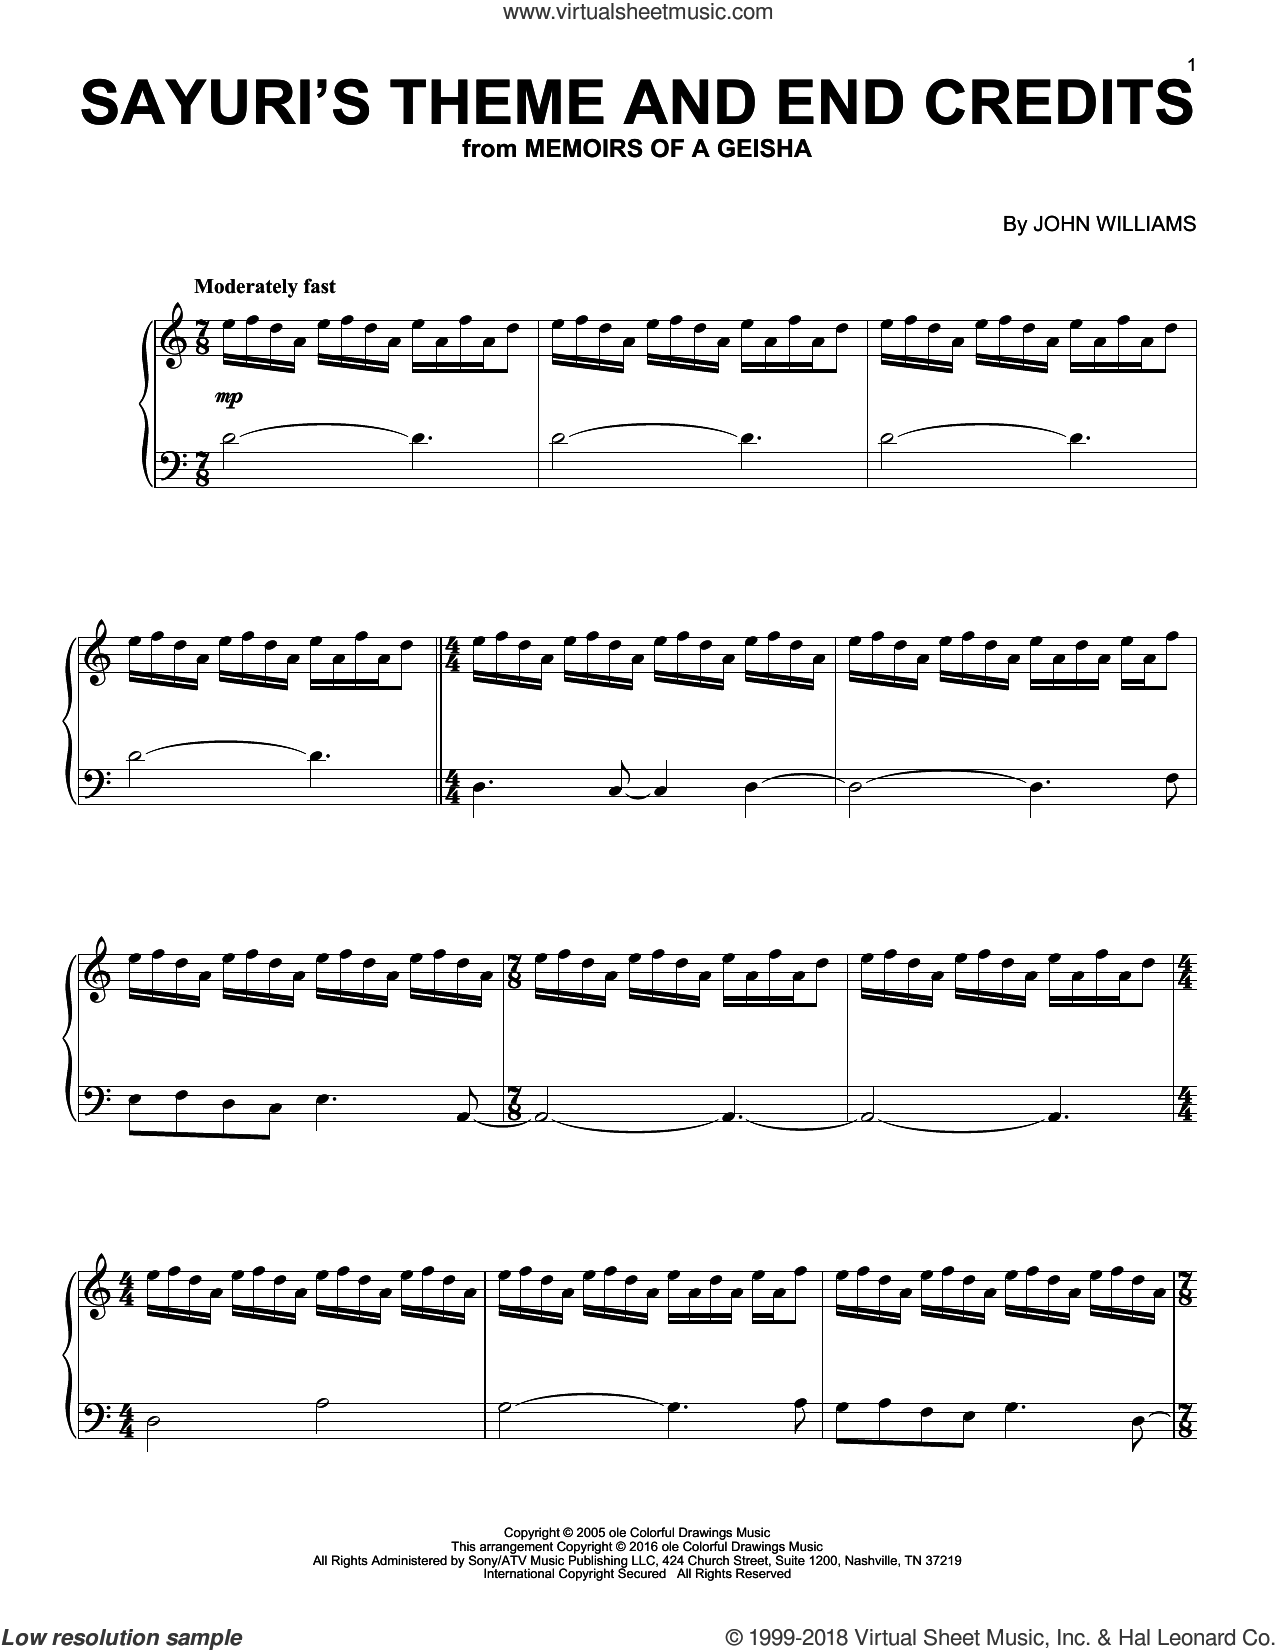 Sayuri's Theme And End Credits sheet music for piano solo by John Williams and Memoirs Of A Geisha (Movie), intermediate skill level